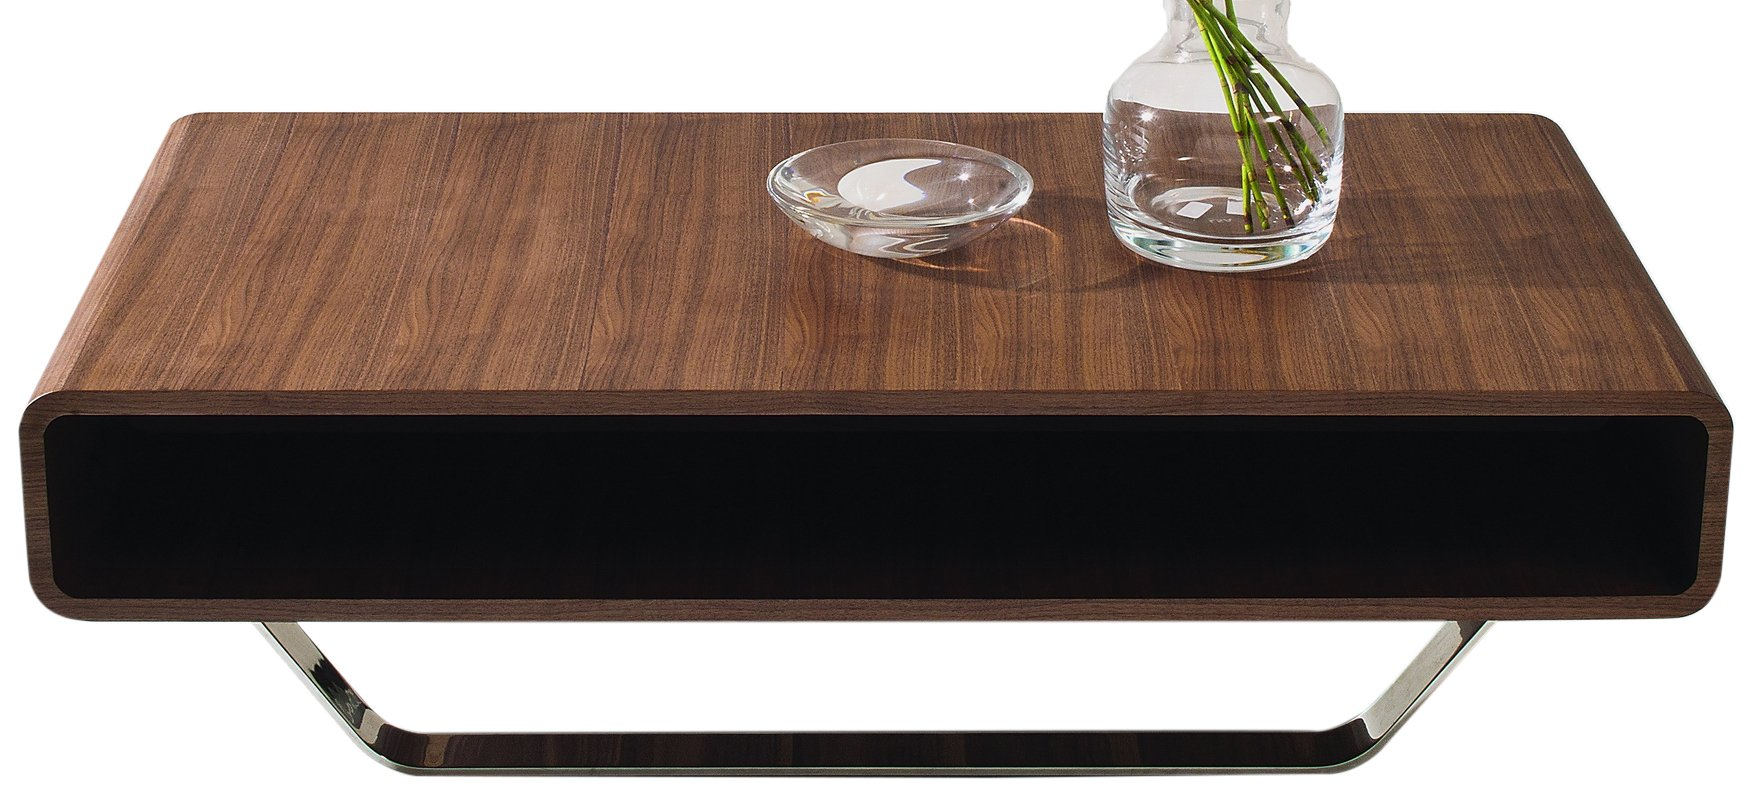 J and M Furniture Modern Coffee Table 136A by J&M Furniture